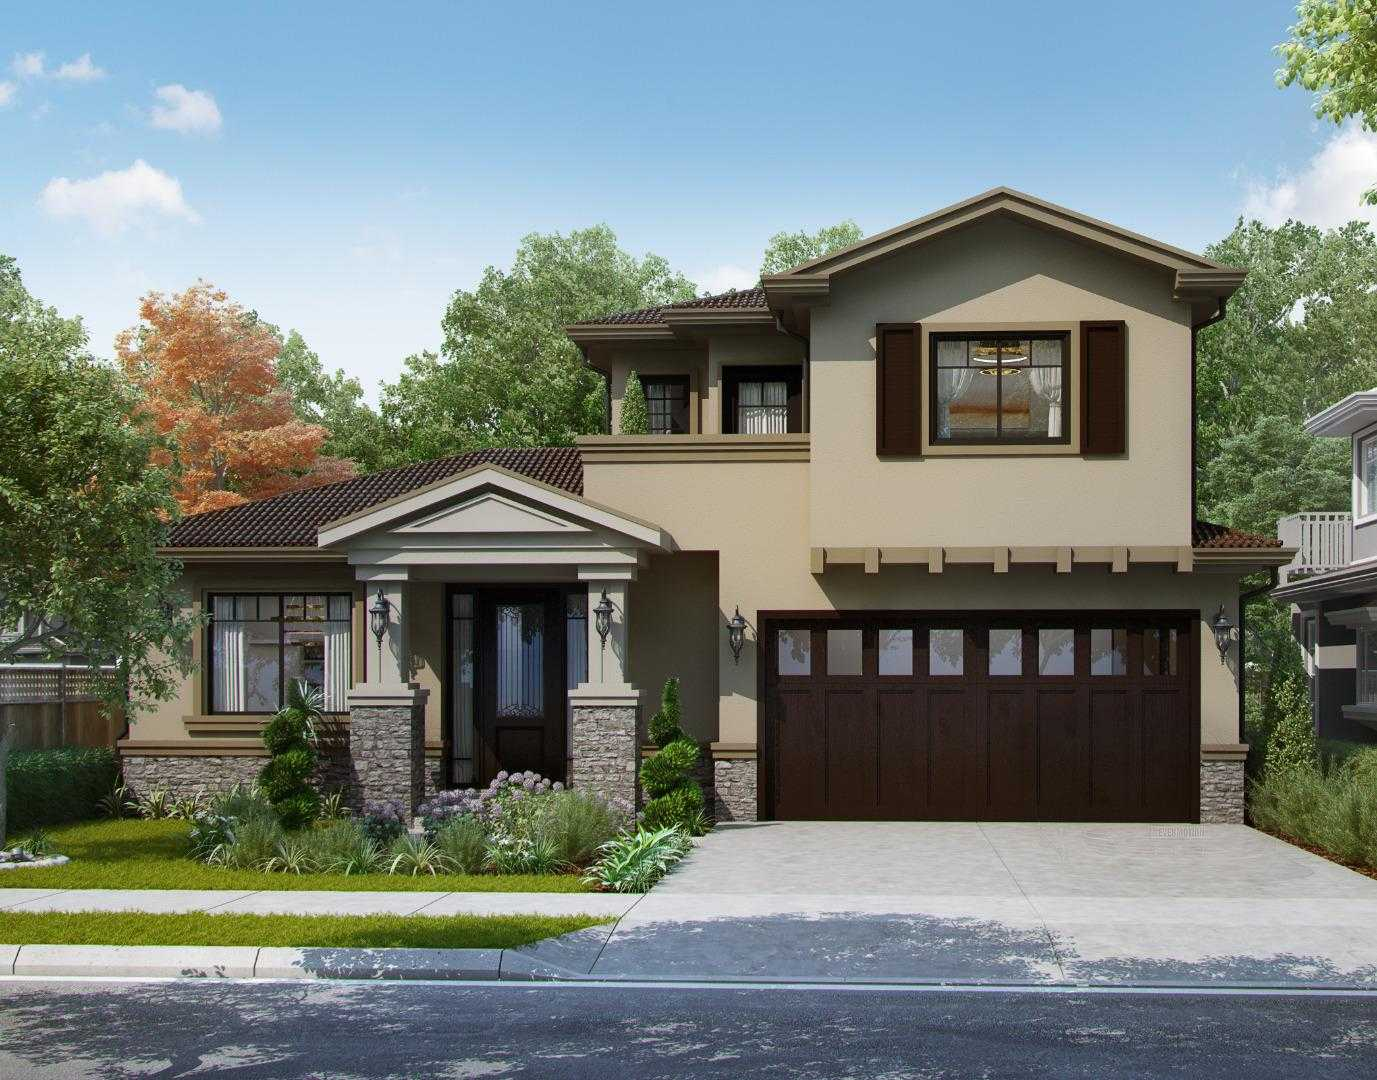 $1,999,000 - 5Br/3Ba -  for Sale in Sunnyvale